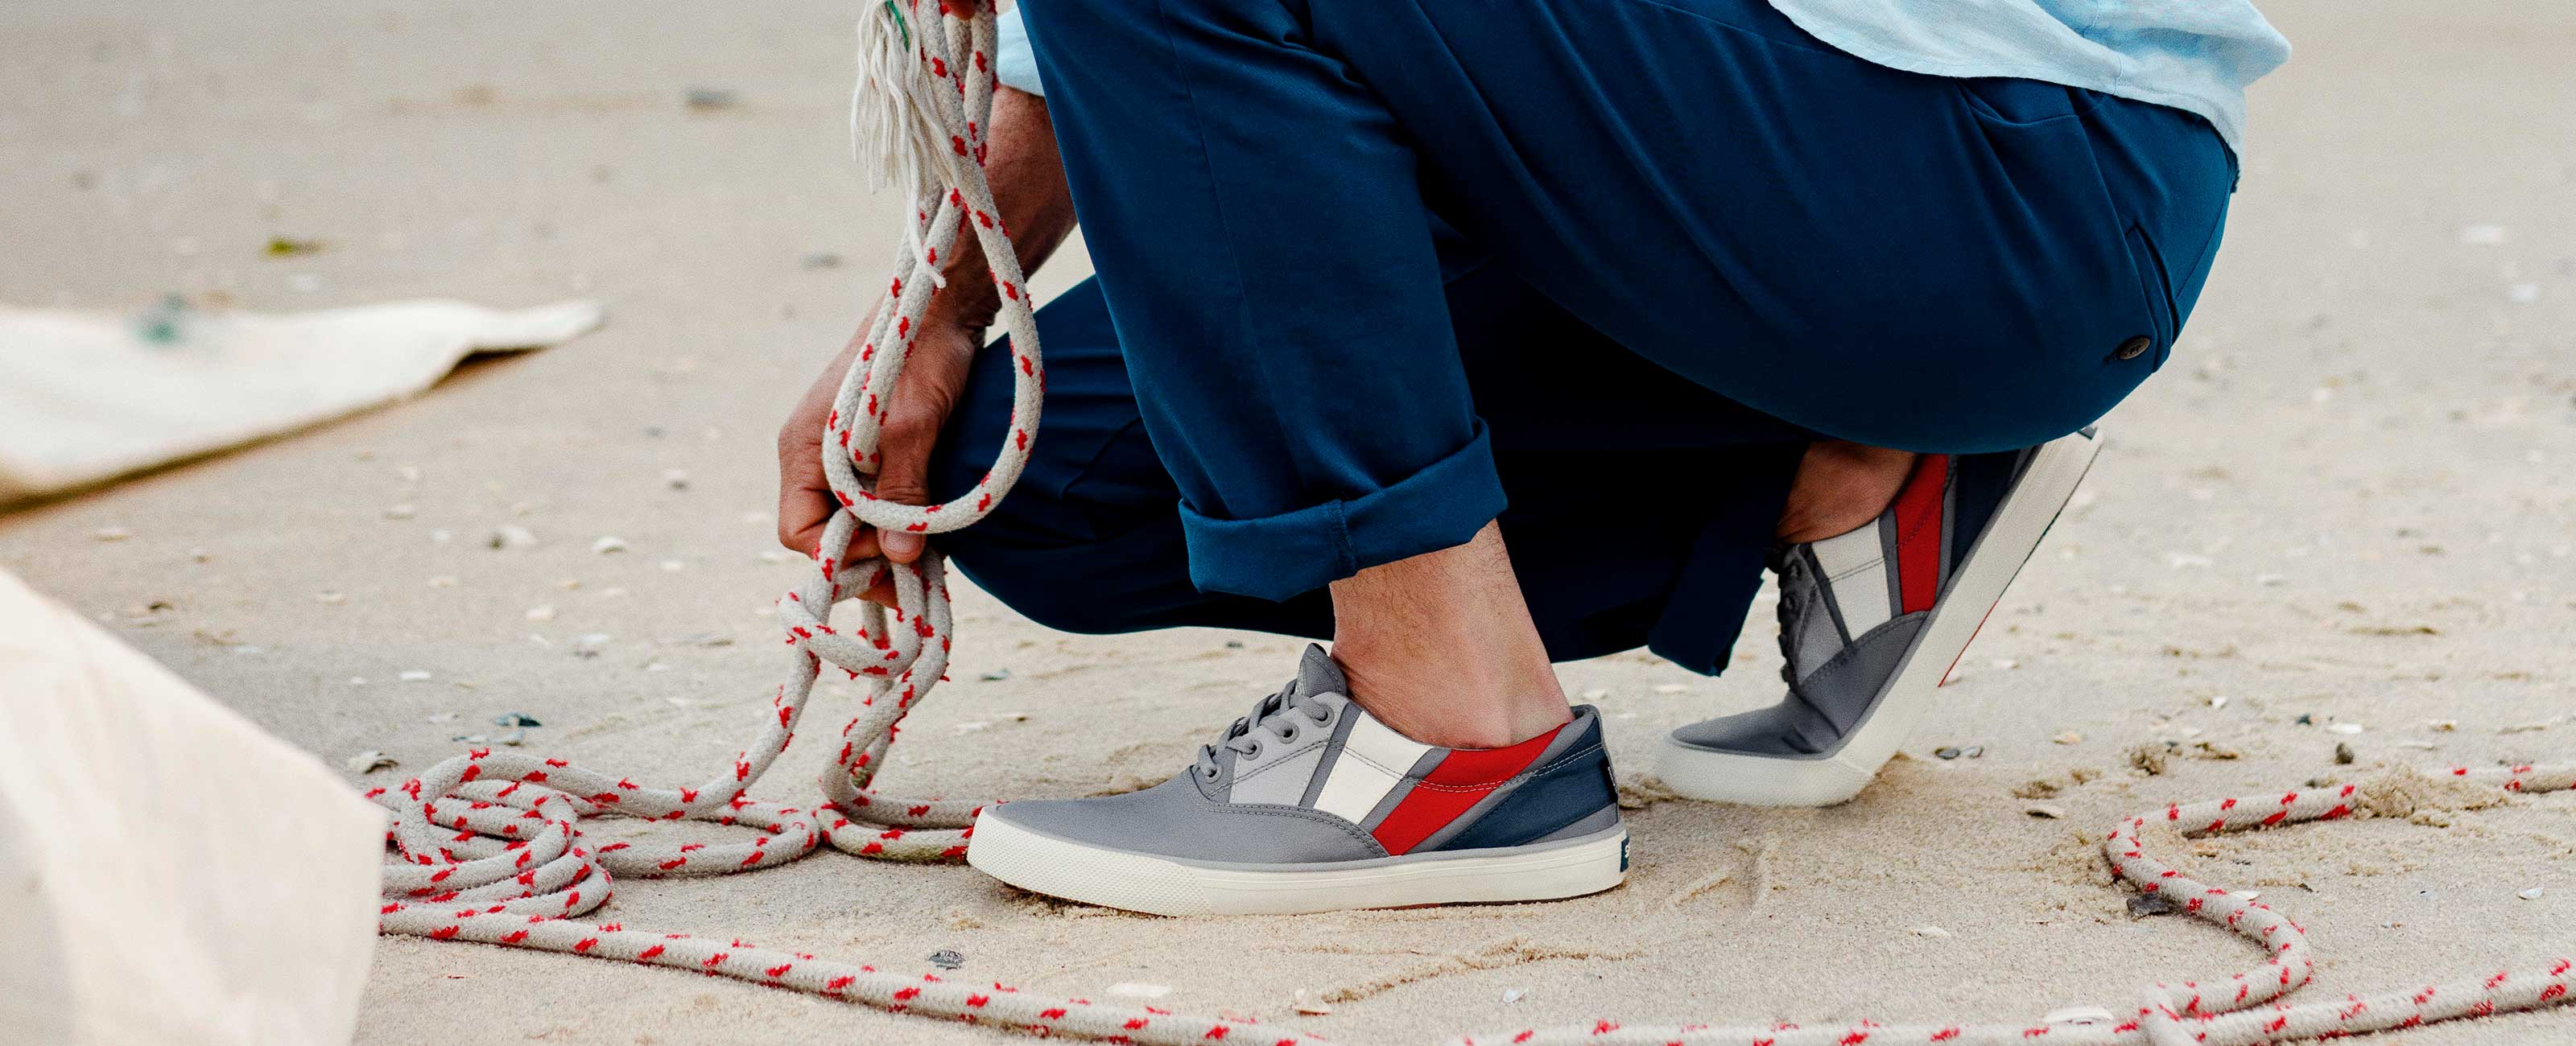 Person kneeled down on a beach, wearing BIONIC Boat Shoes, while attending to a rope from a boat.